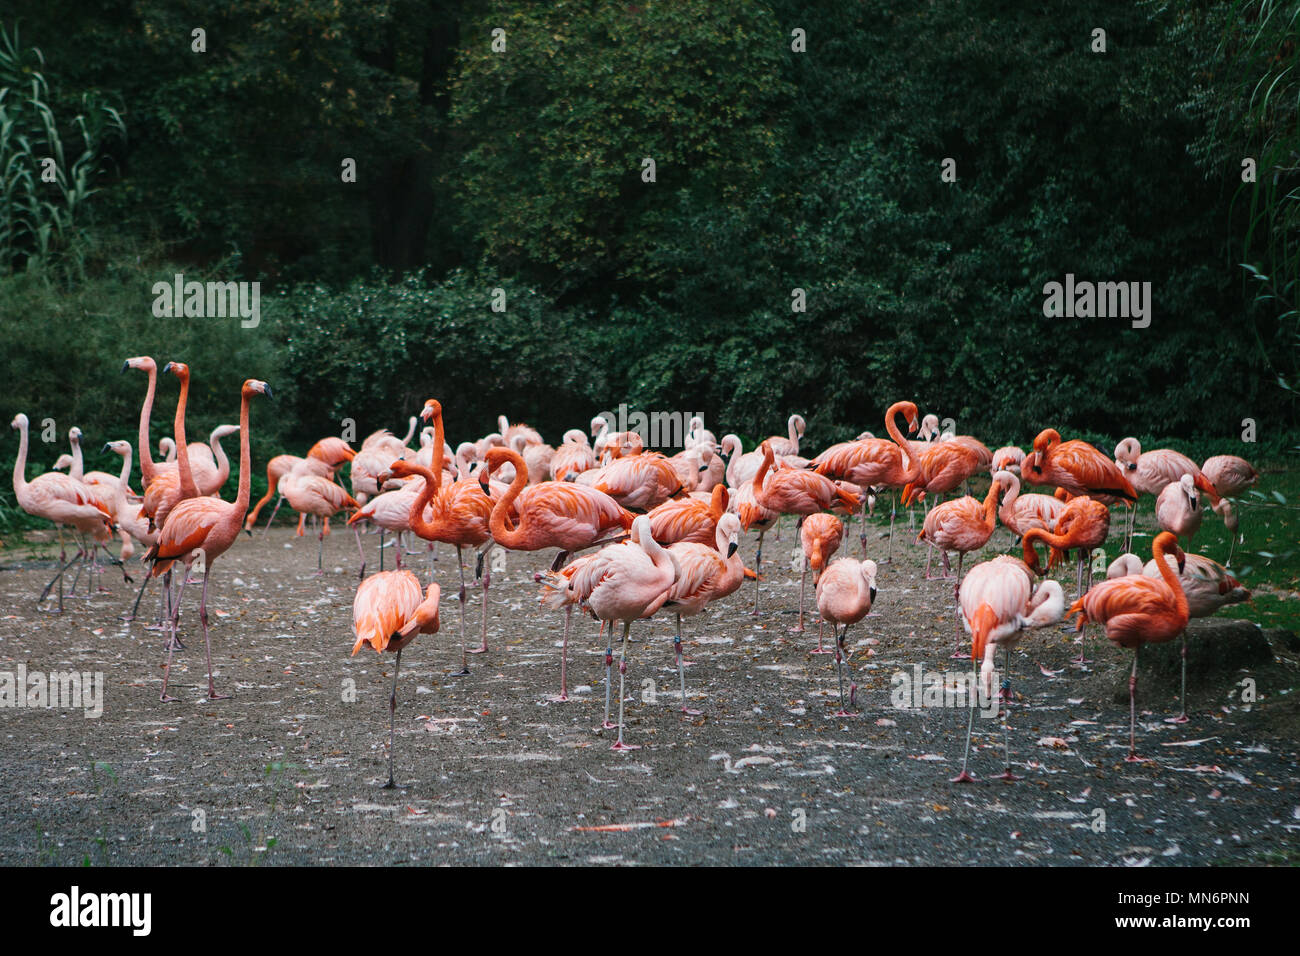 Flamingo or pack of flamingo in zoo of Prague - Stock Image